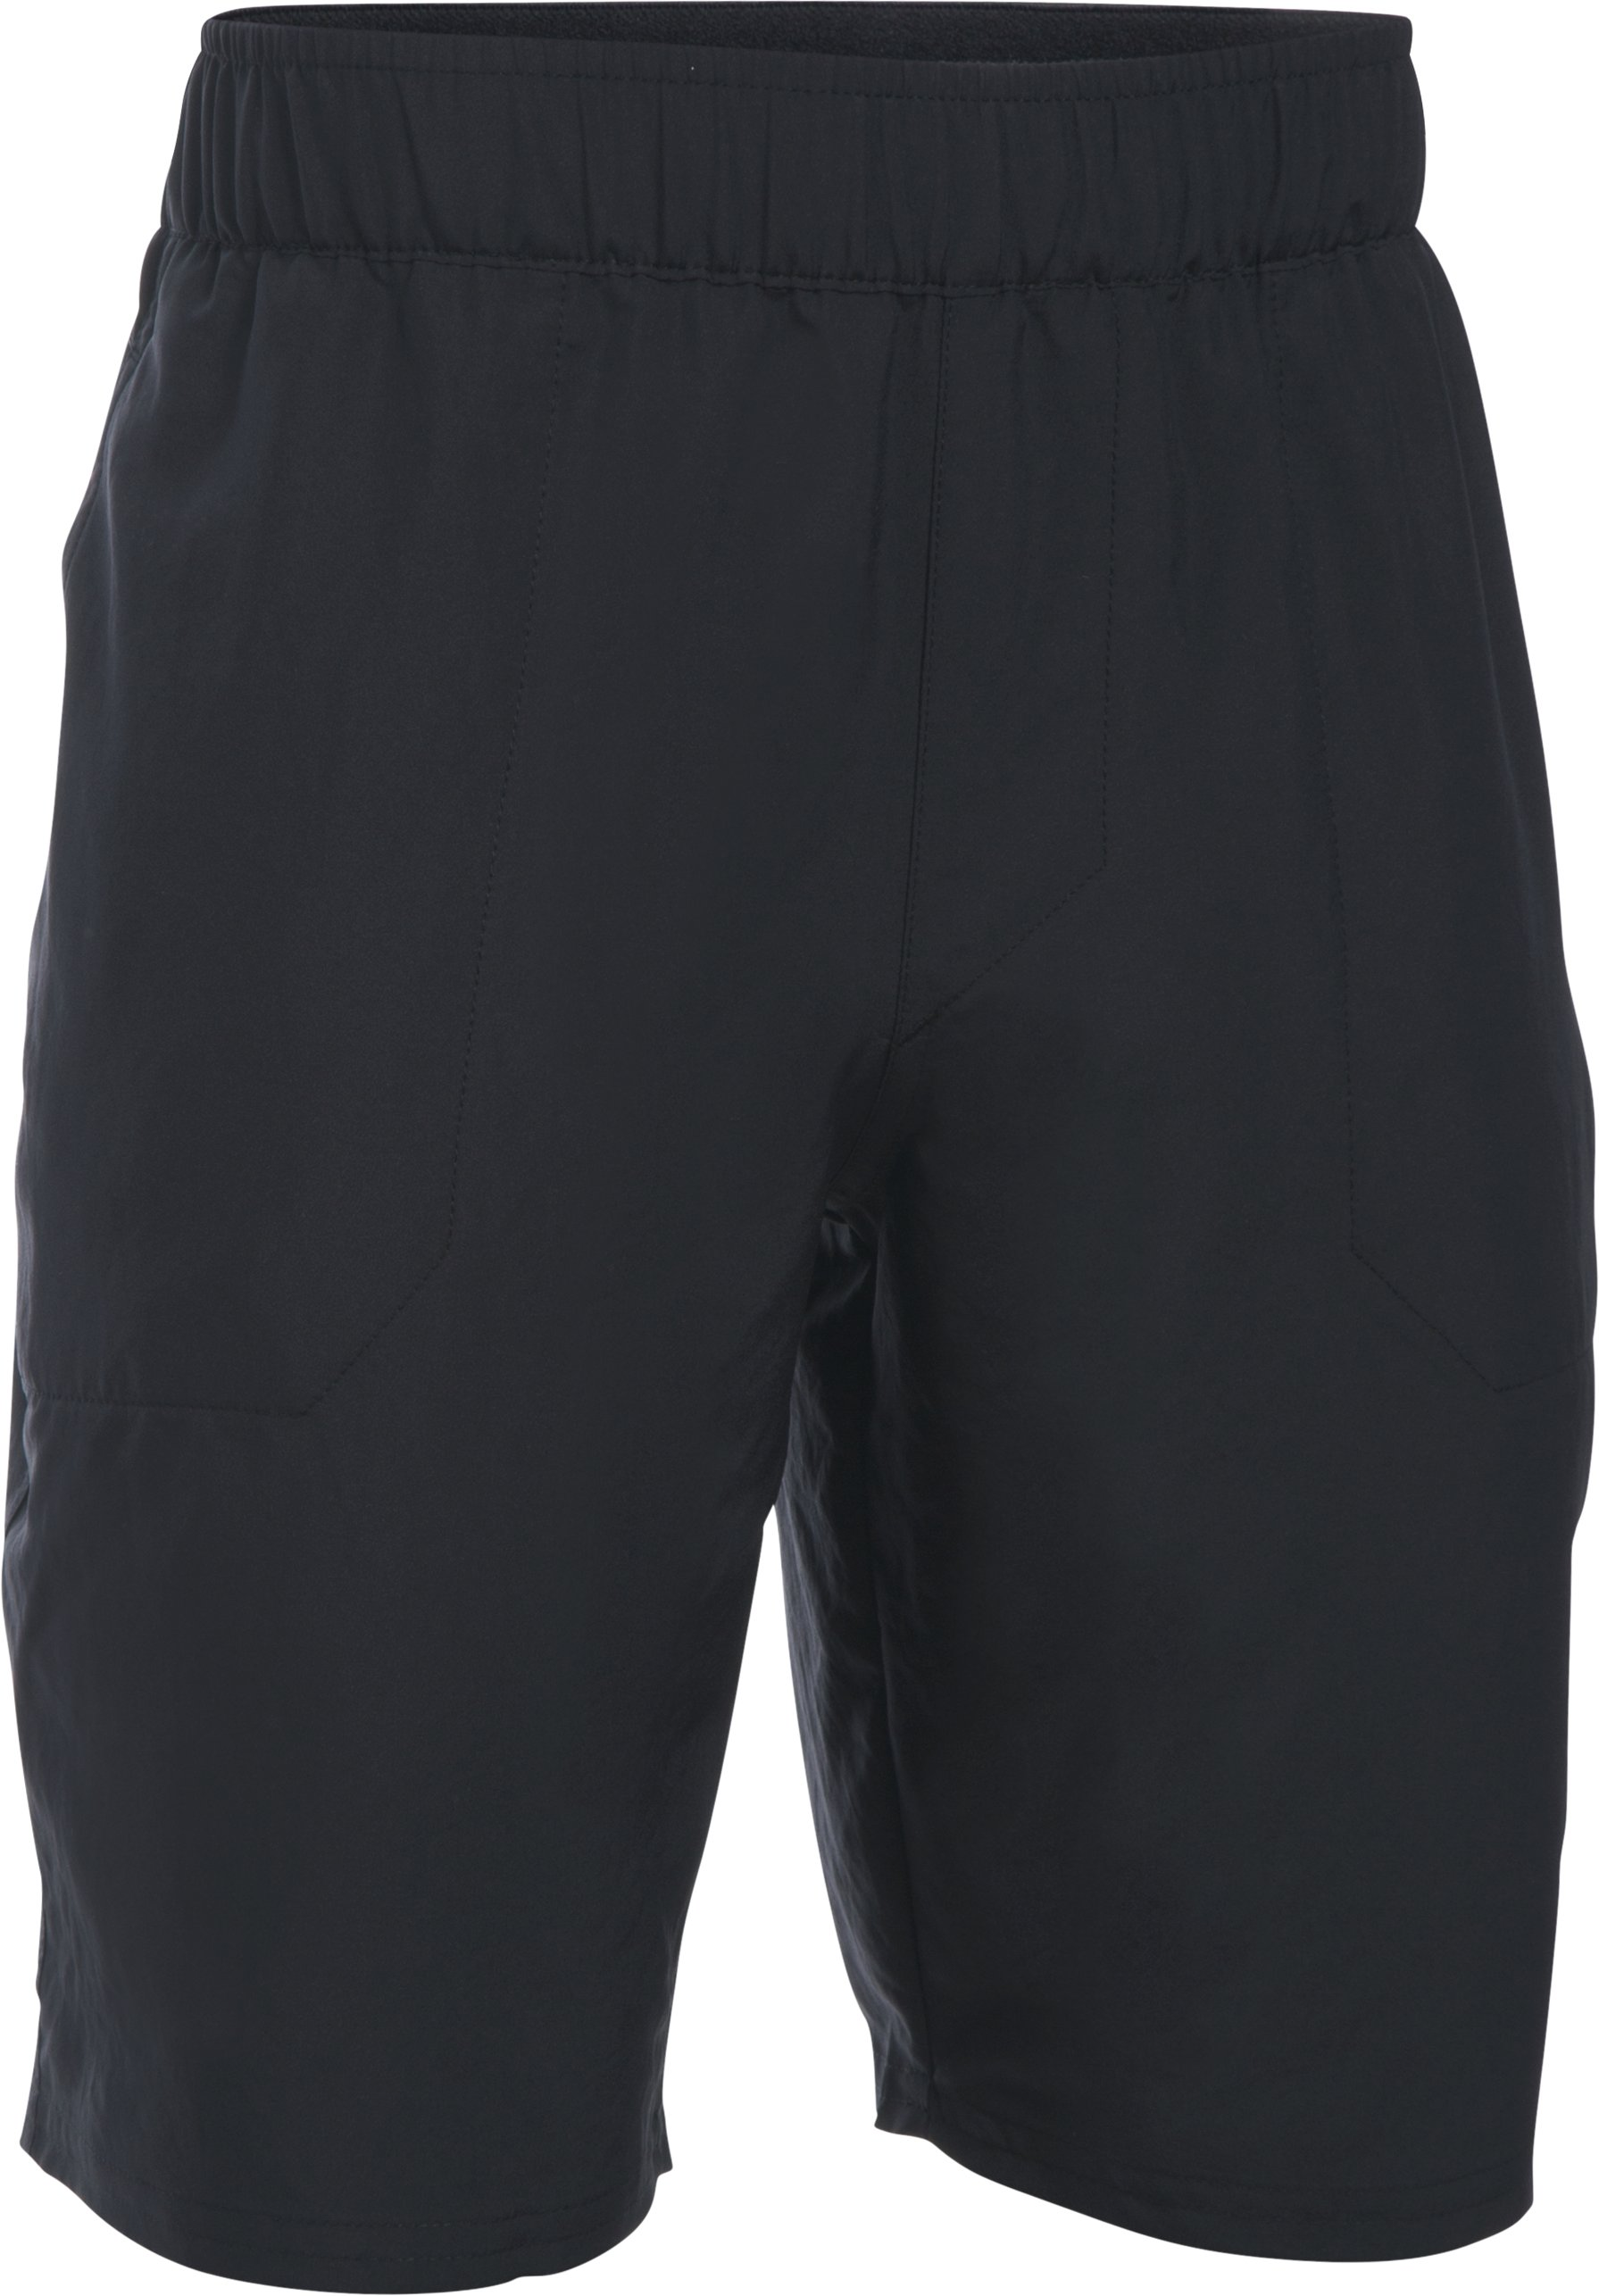 Boys' UA Coastal Amphibious Shorts, Black , undefined